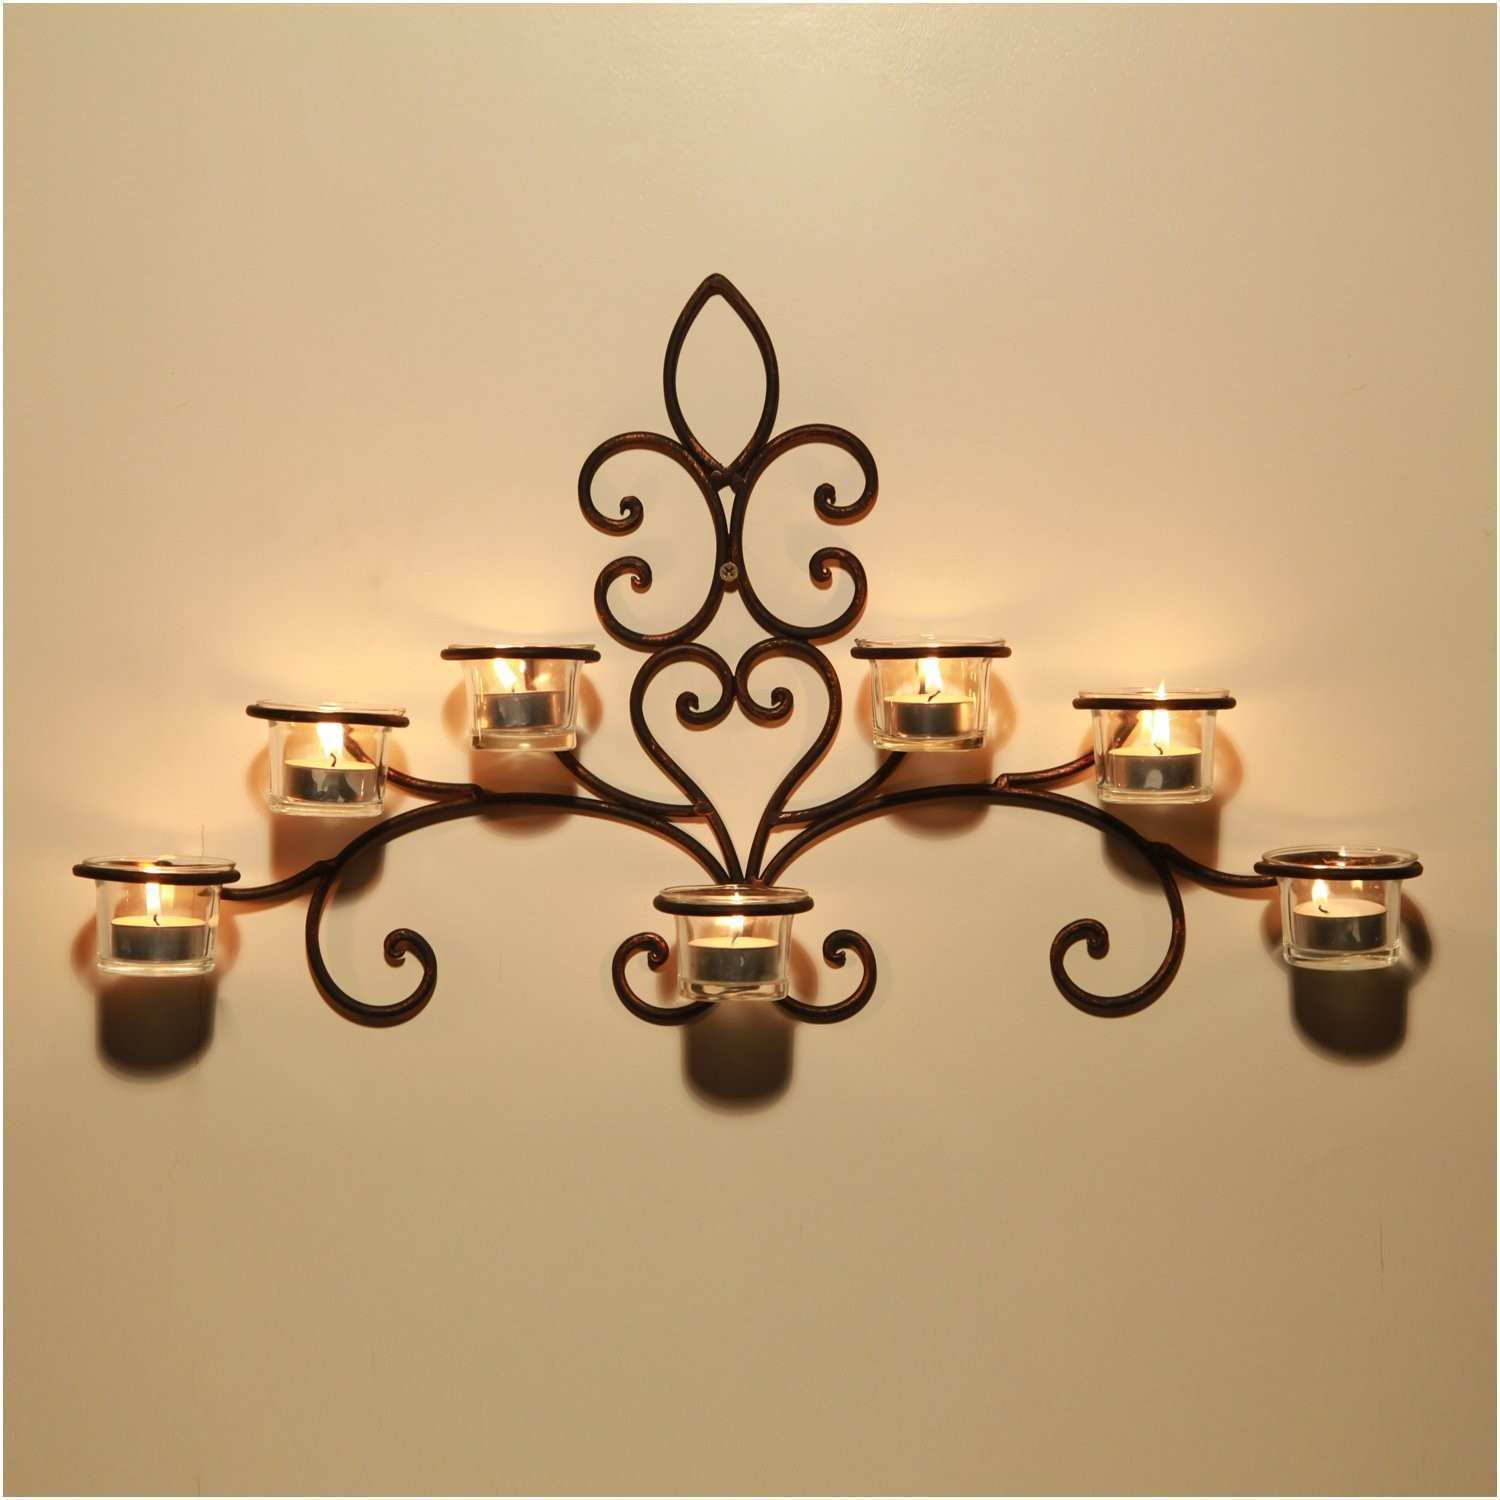 Home Design Wall Sconce Candle Lovely Wall Sconces For Bedrooms